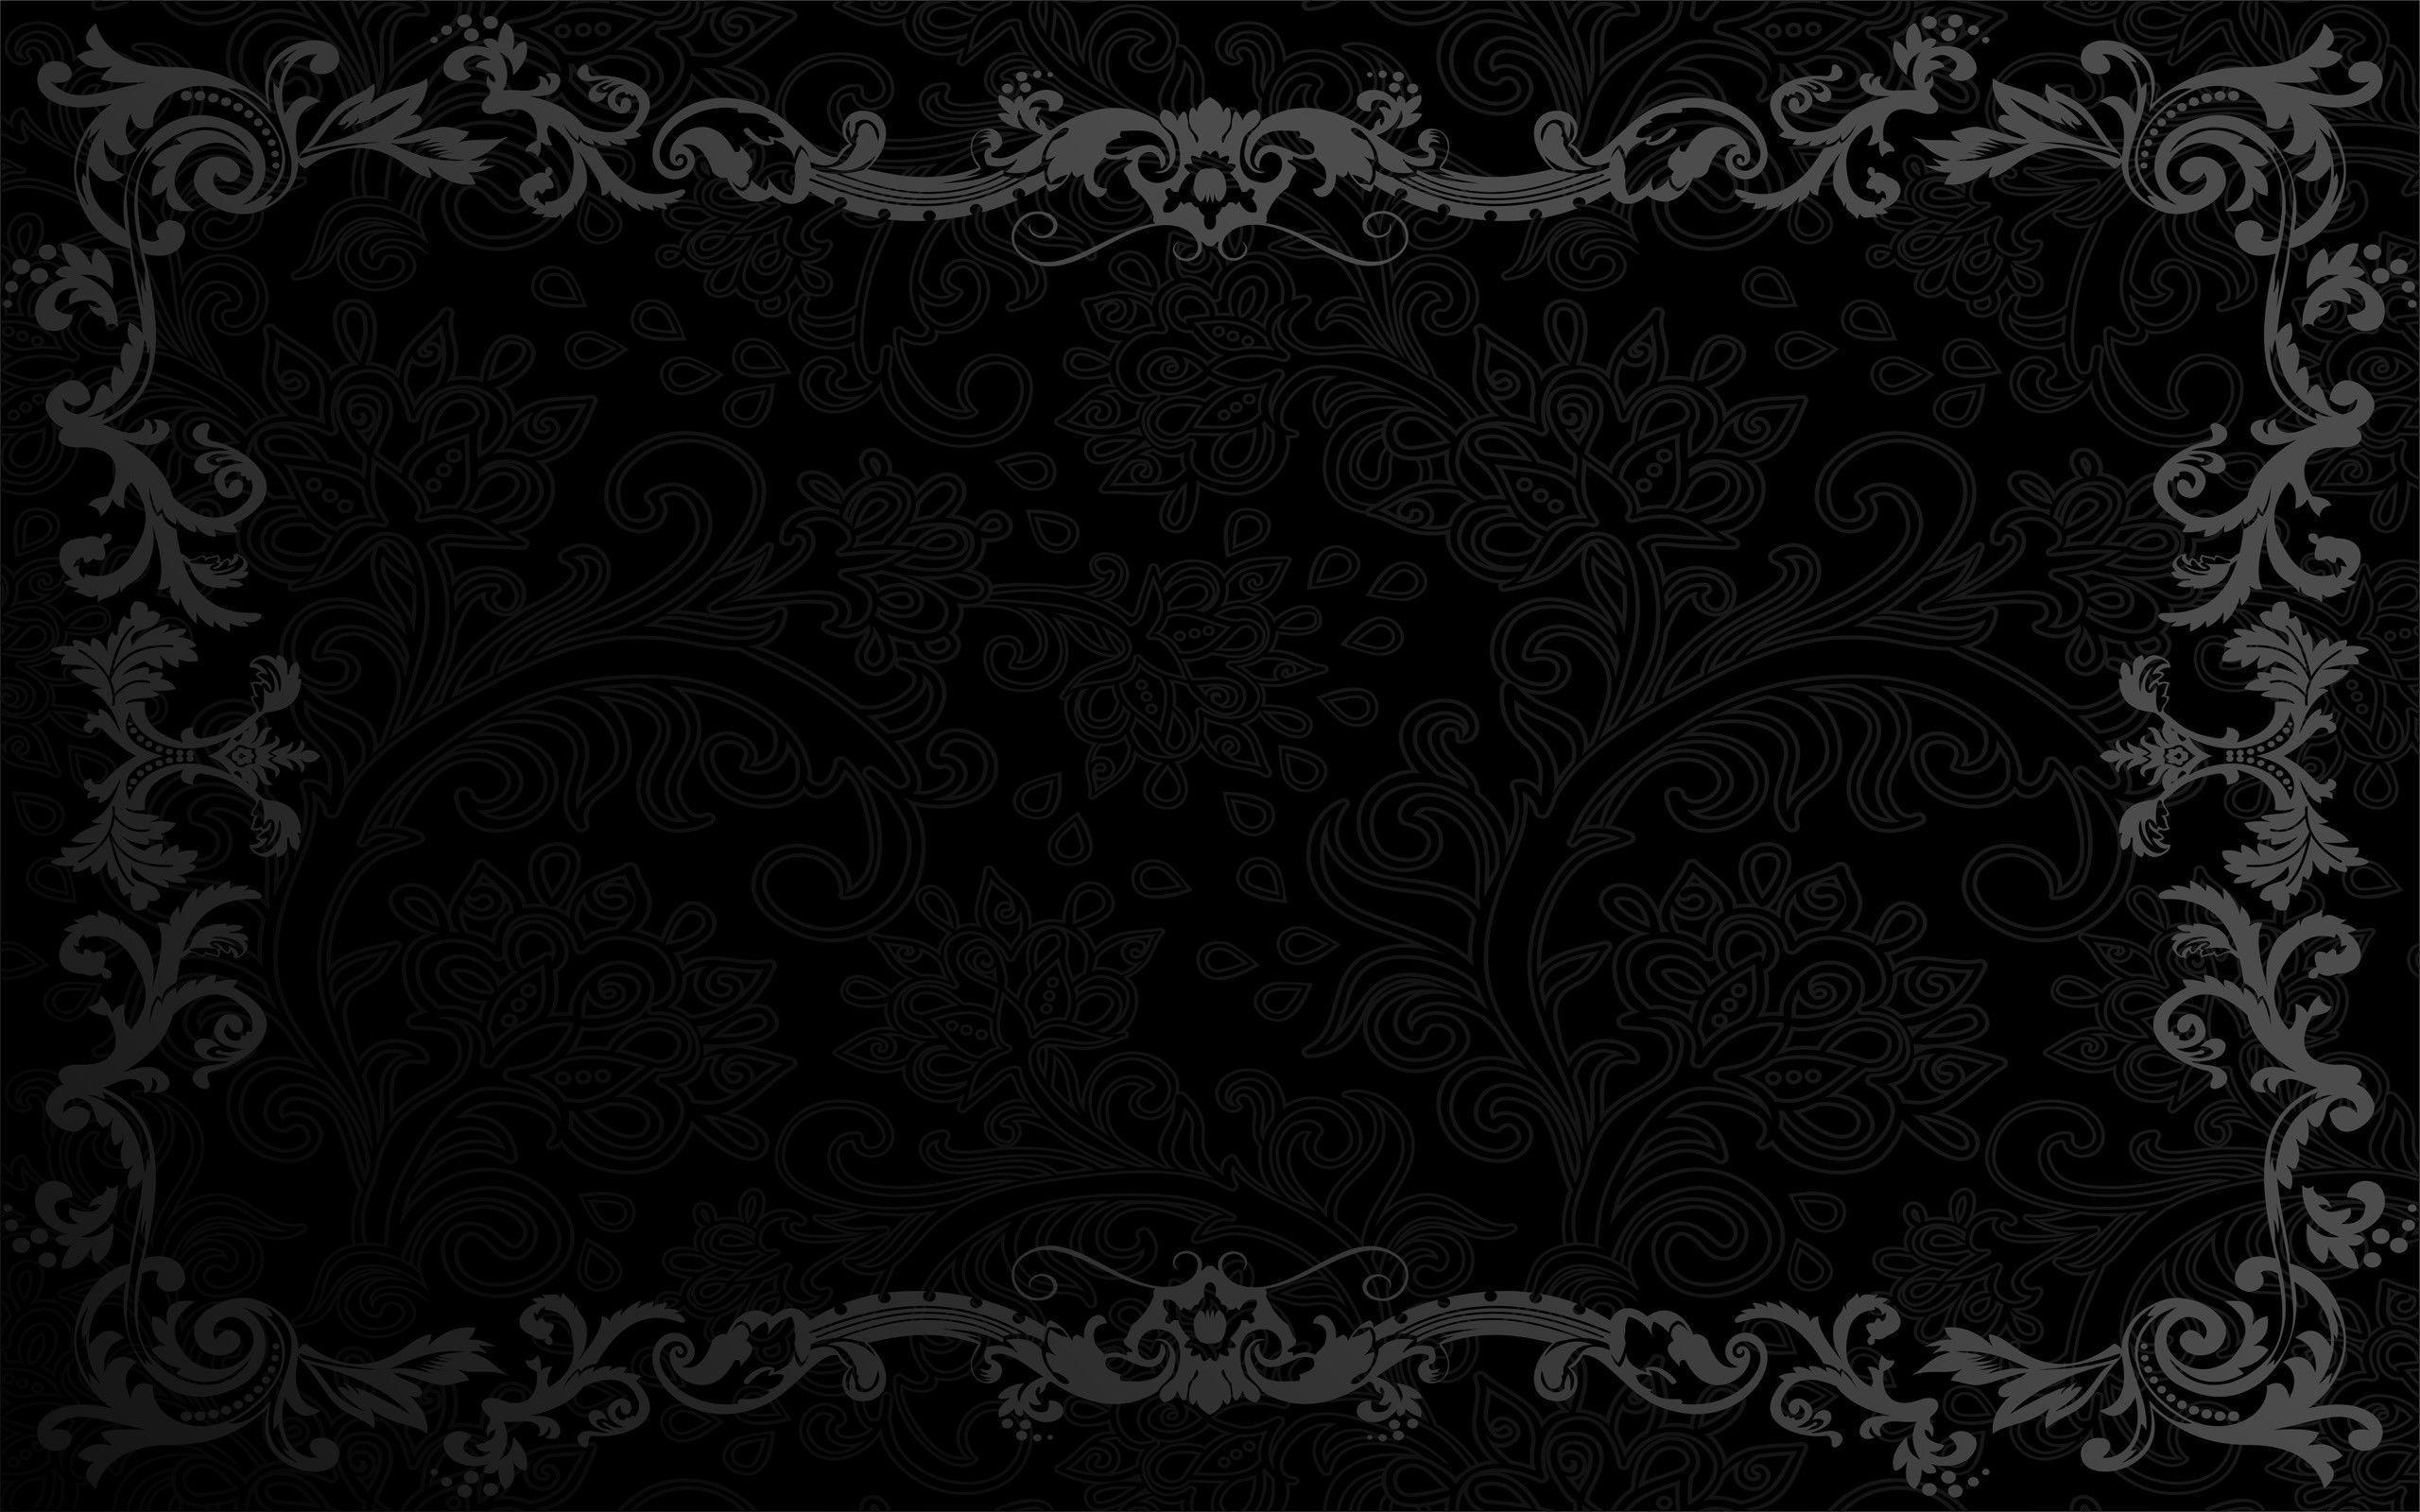 Wallpapers For > Dark Backgrounds Designs For Websites